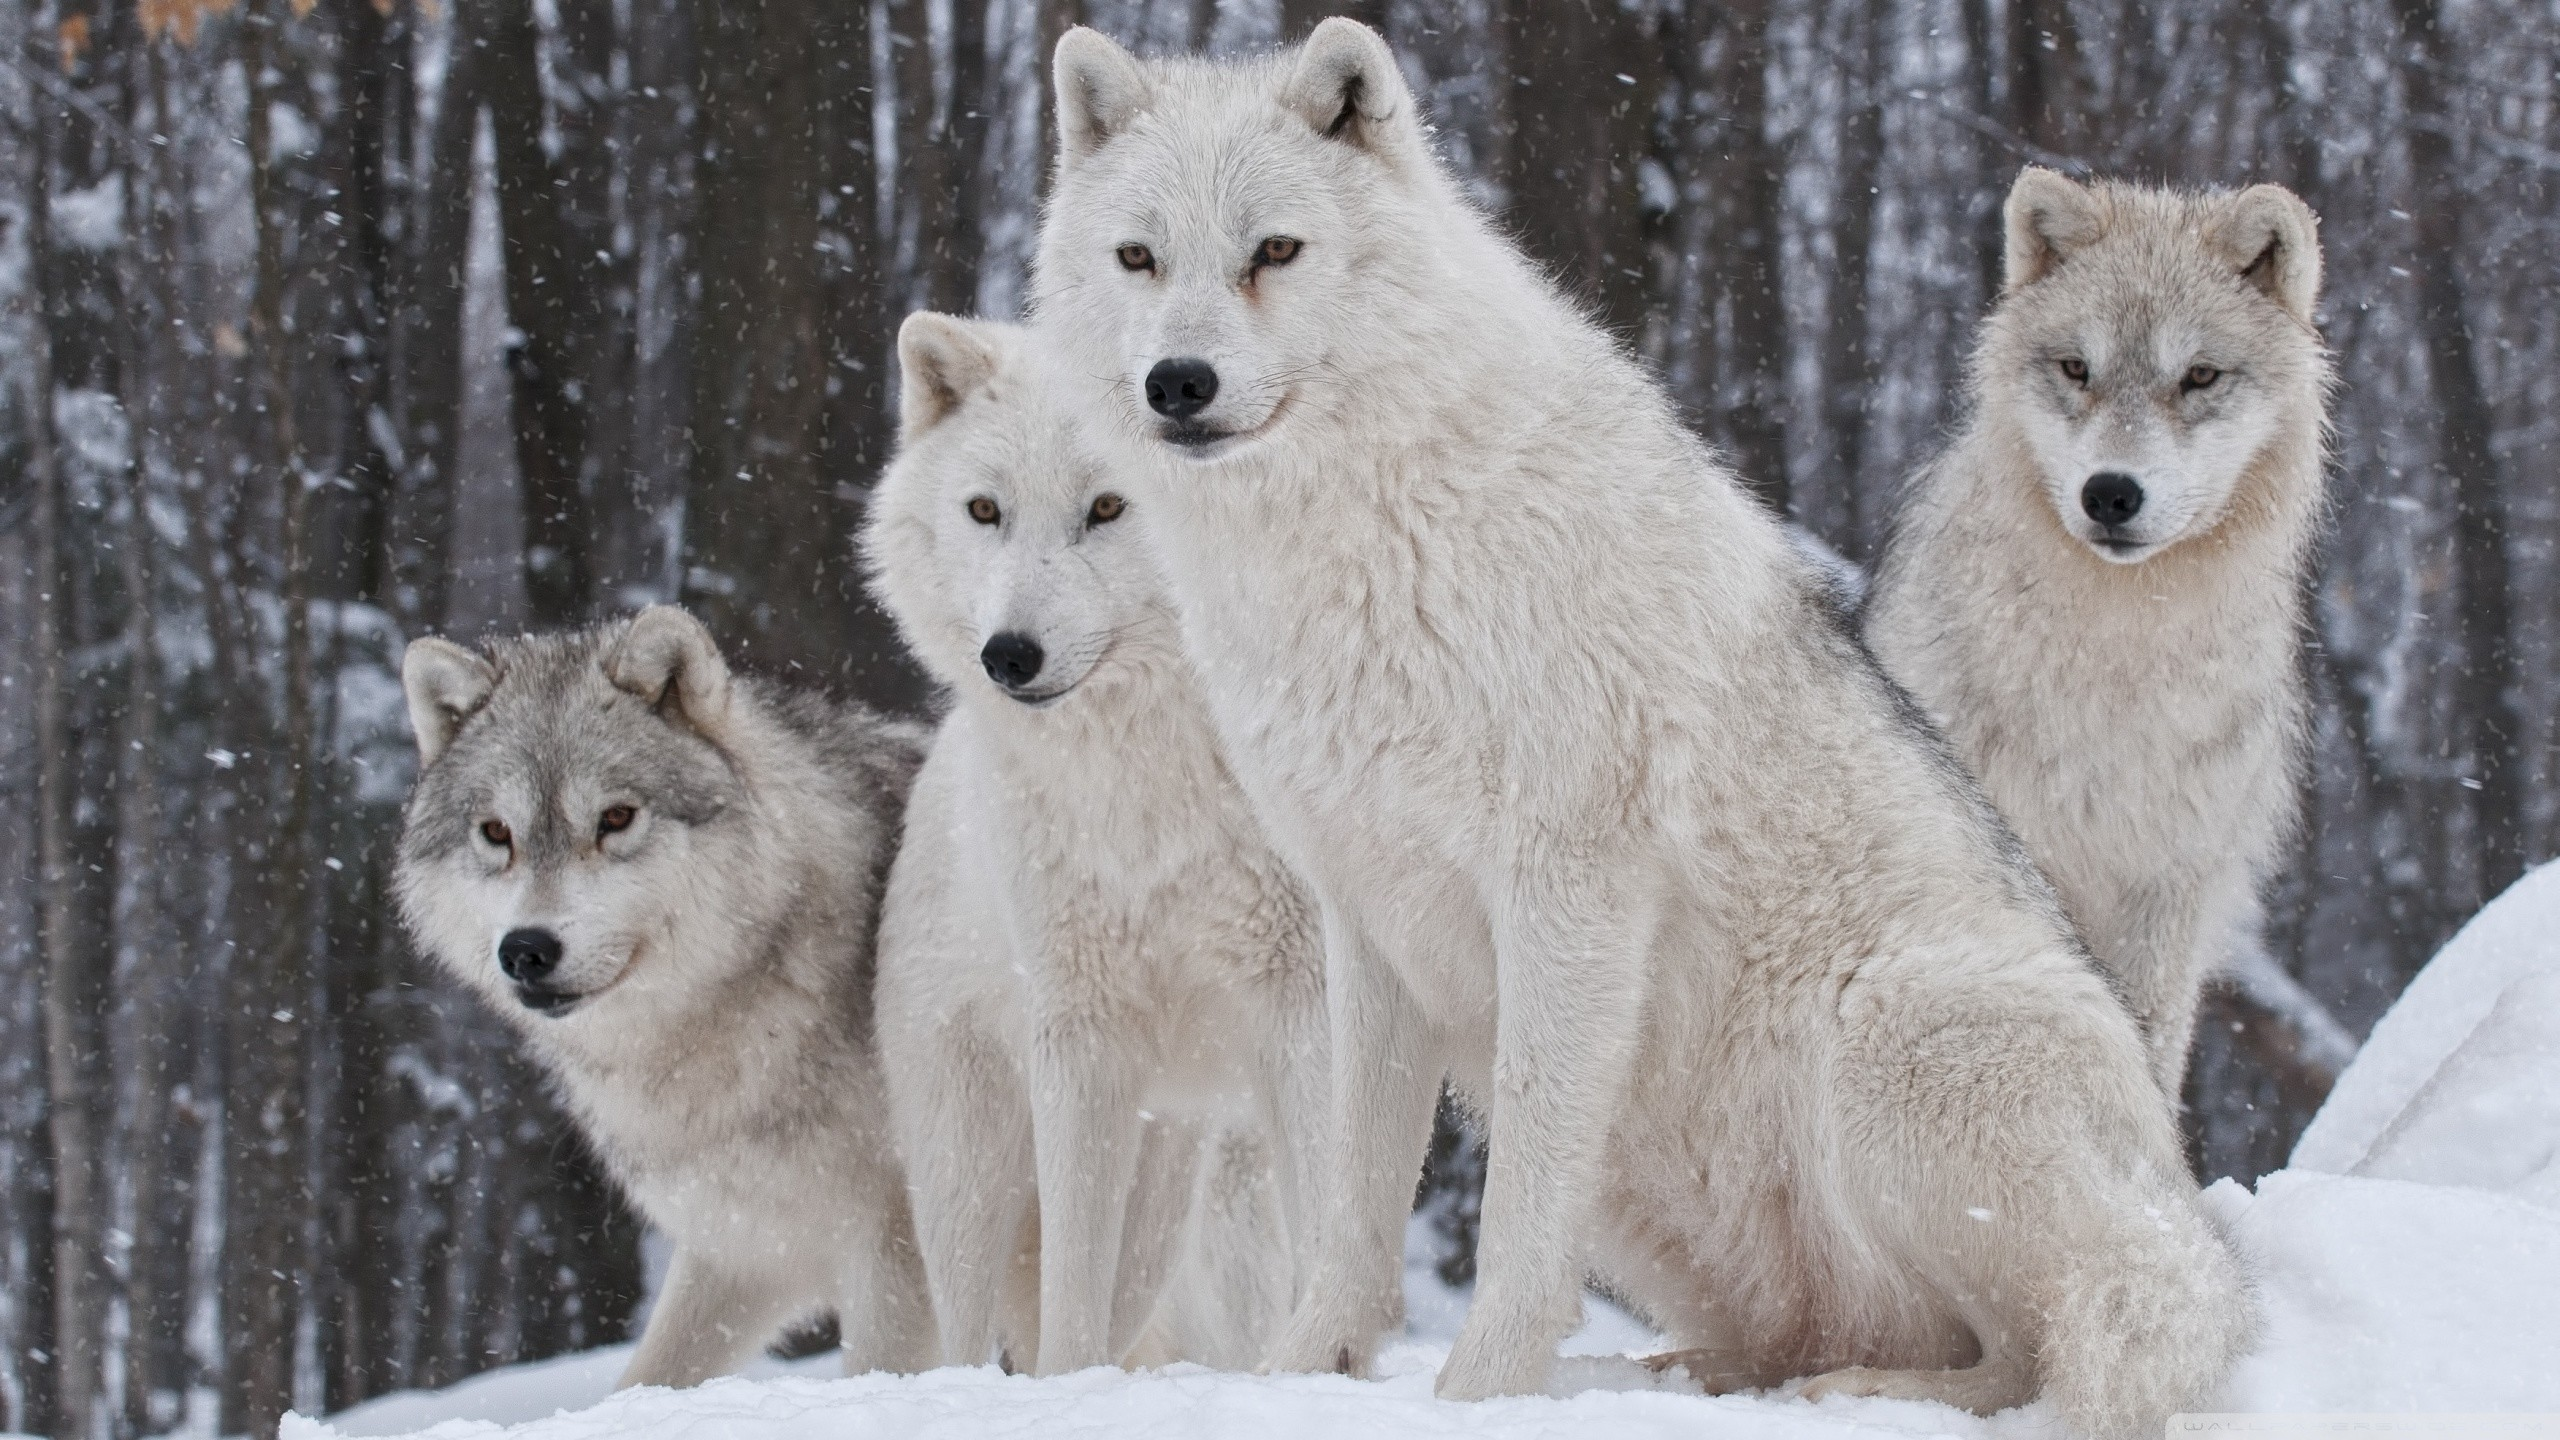 Wolf HD Wallpapers Backgrounds Wallpaper | HD Wallpapers | Pinterest | Wolf  wallpaper, Wallpaper and Wallpapers android